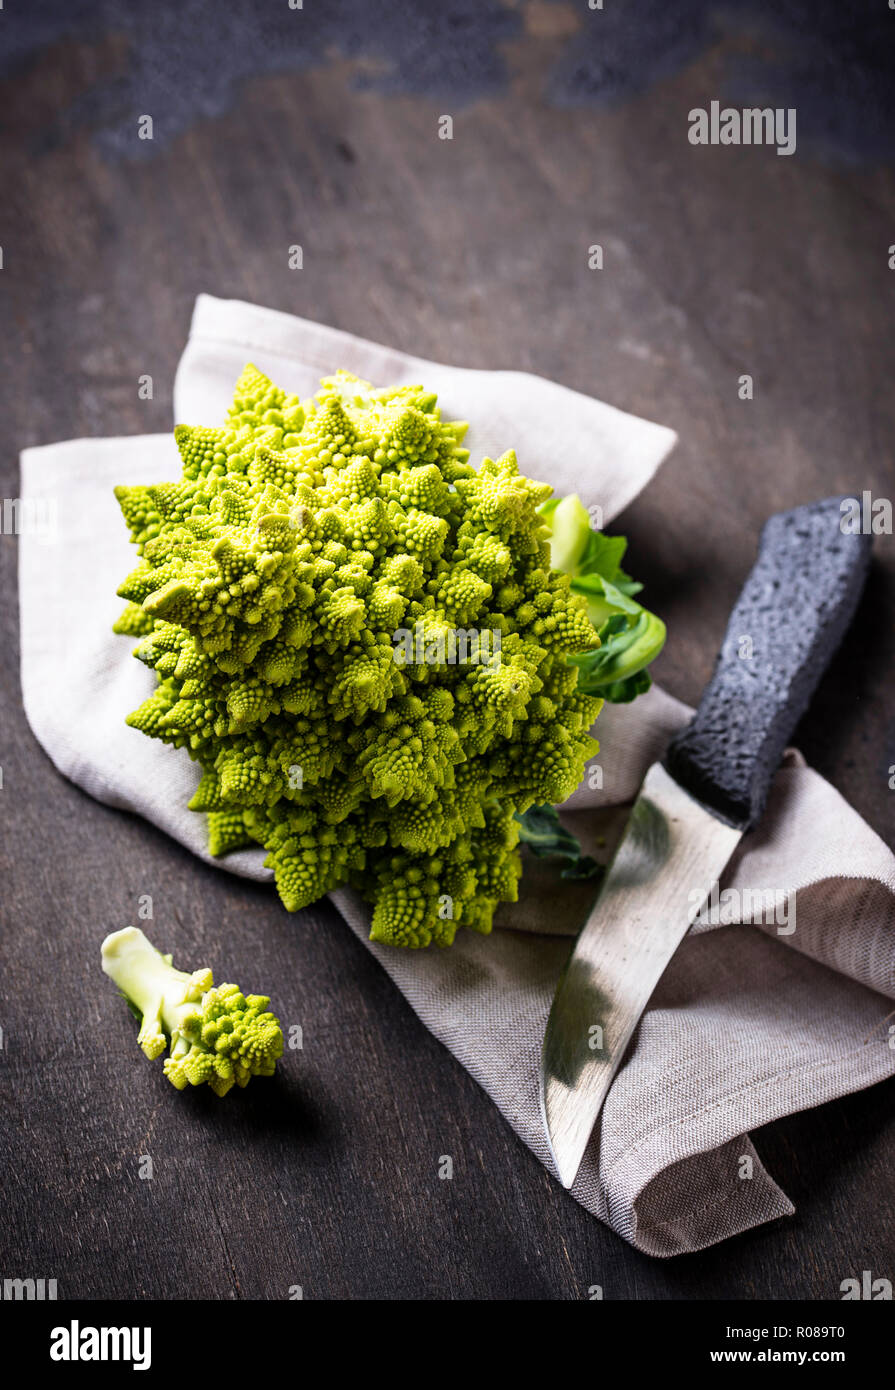 Romanesco broccoli on dark background - Stock Image